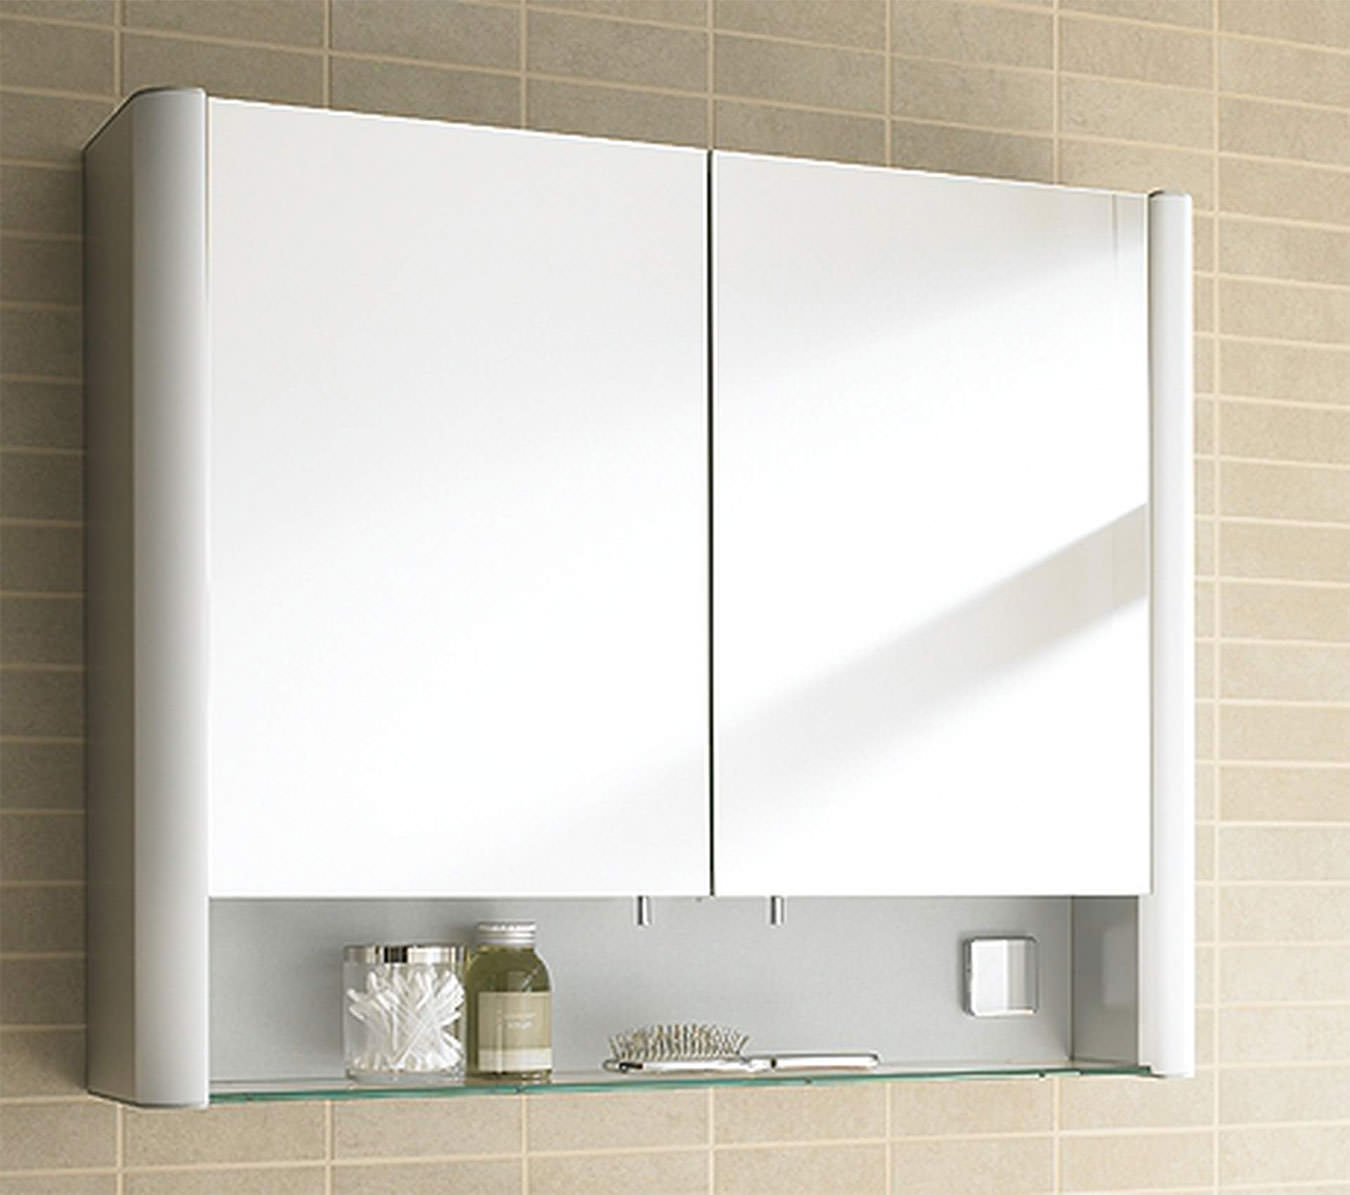 TANGKULA Mirrored Bathroom Cabinet Wall Mount Storage